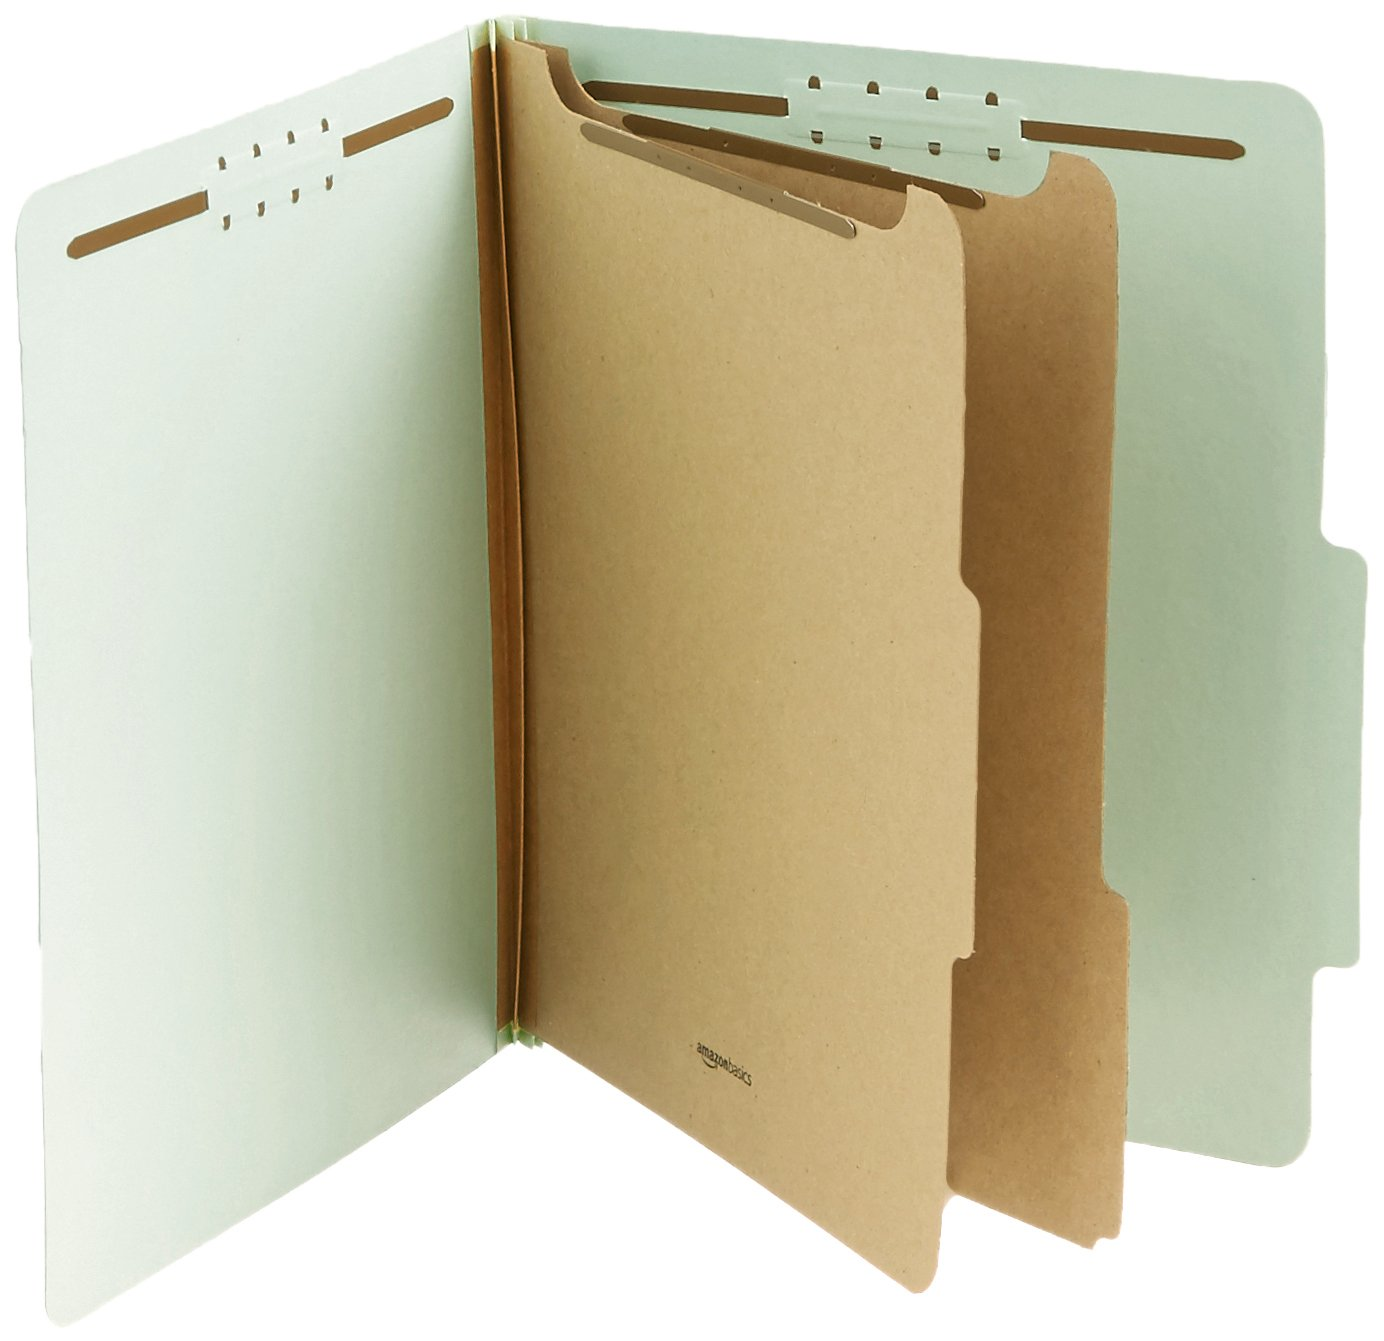 AmazonBasics Pressboard Classification File Folder with Fasteners, 2 Dividers, 2 Inch Expansion, Letter Size, Gray/Green, 10-Pack by AmazonBasics